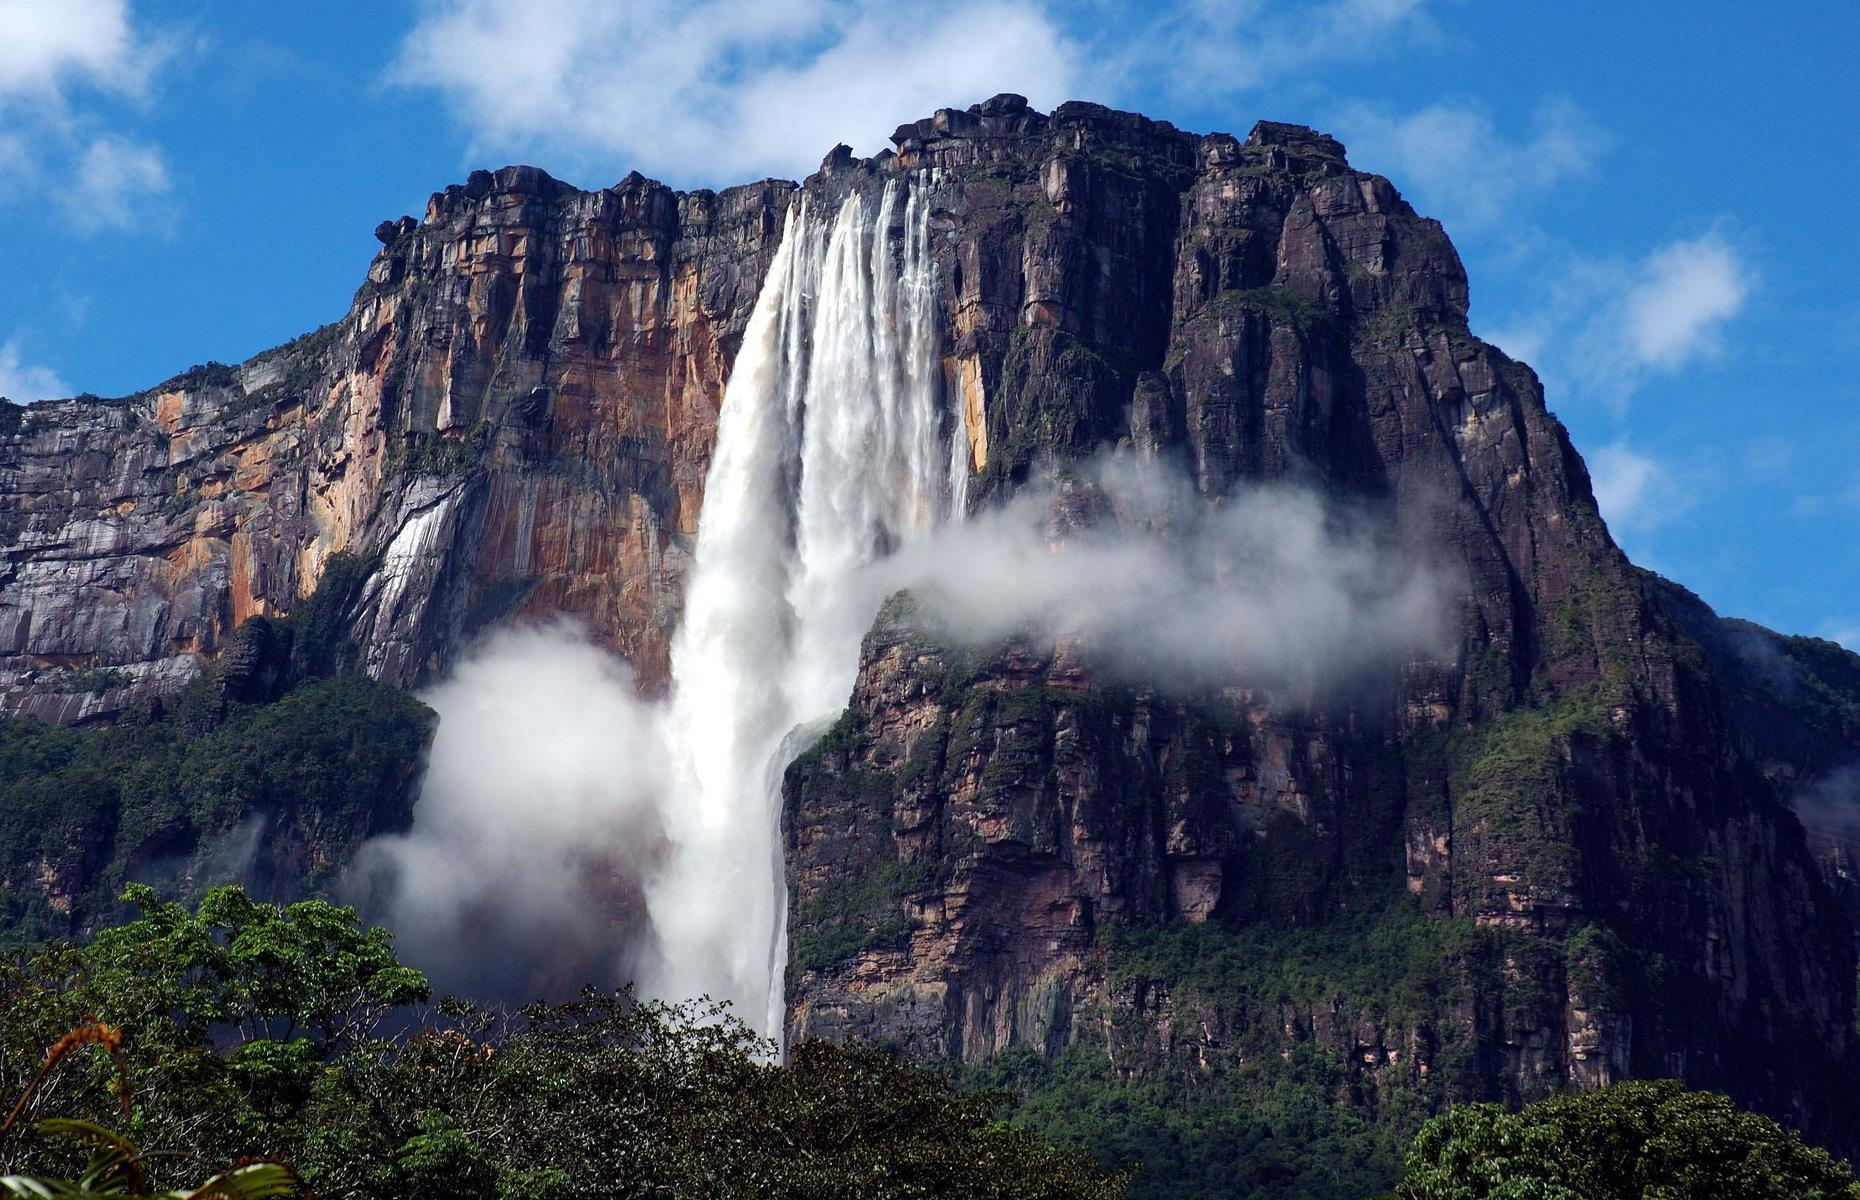 Slide 6 of 31: Technically, the largest known falls is the Denmark Strait cataract, which lies beneath the Atlantic Ocean. But, on land, Angel Falls takes the literal top spot as the world's tallest waterfall, crashing 3,212 feet (979m) over the edge of the Auyán-tepui mountain and into the Churun River. Its location in Canaima National Park is equally dramatic, with flat-topped mountains and mist-shrouded forest.